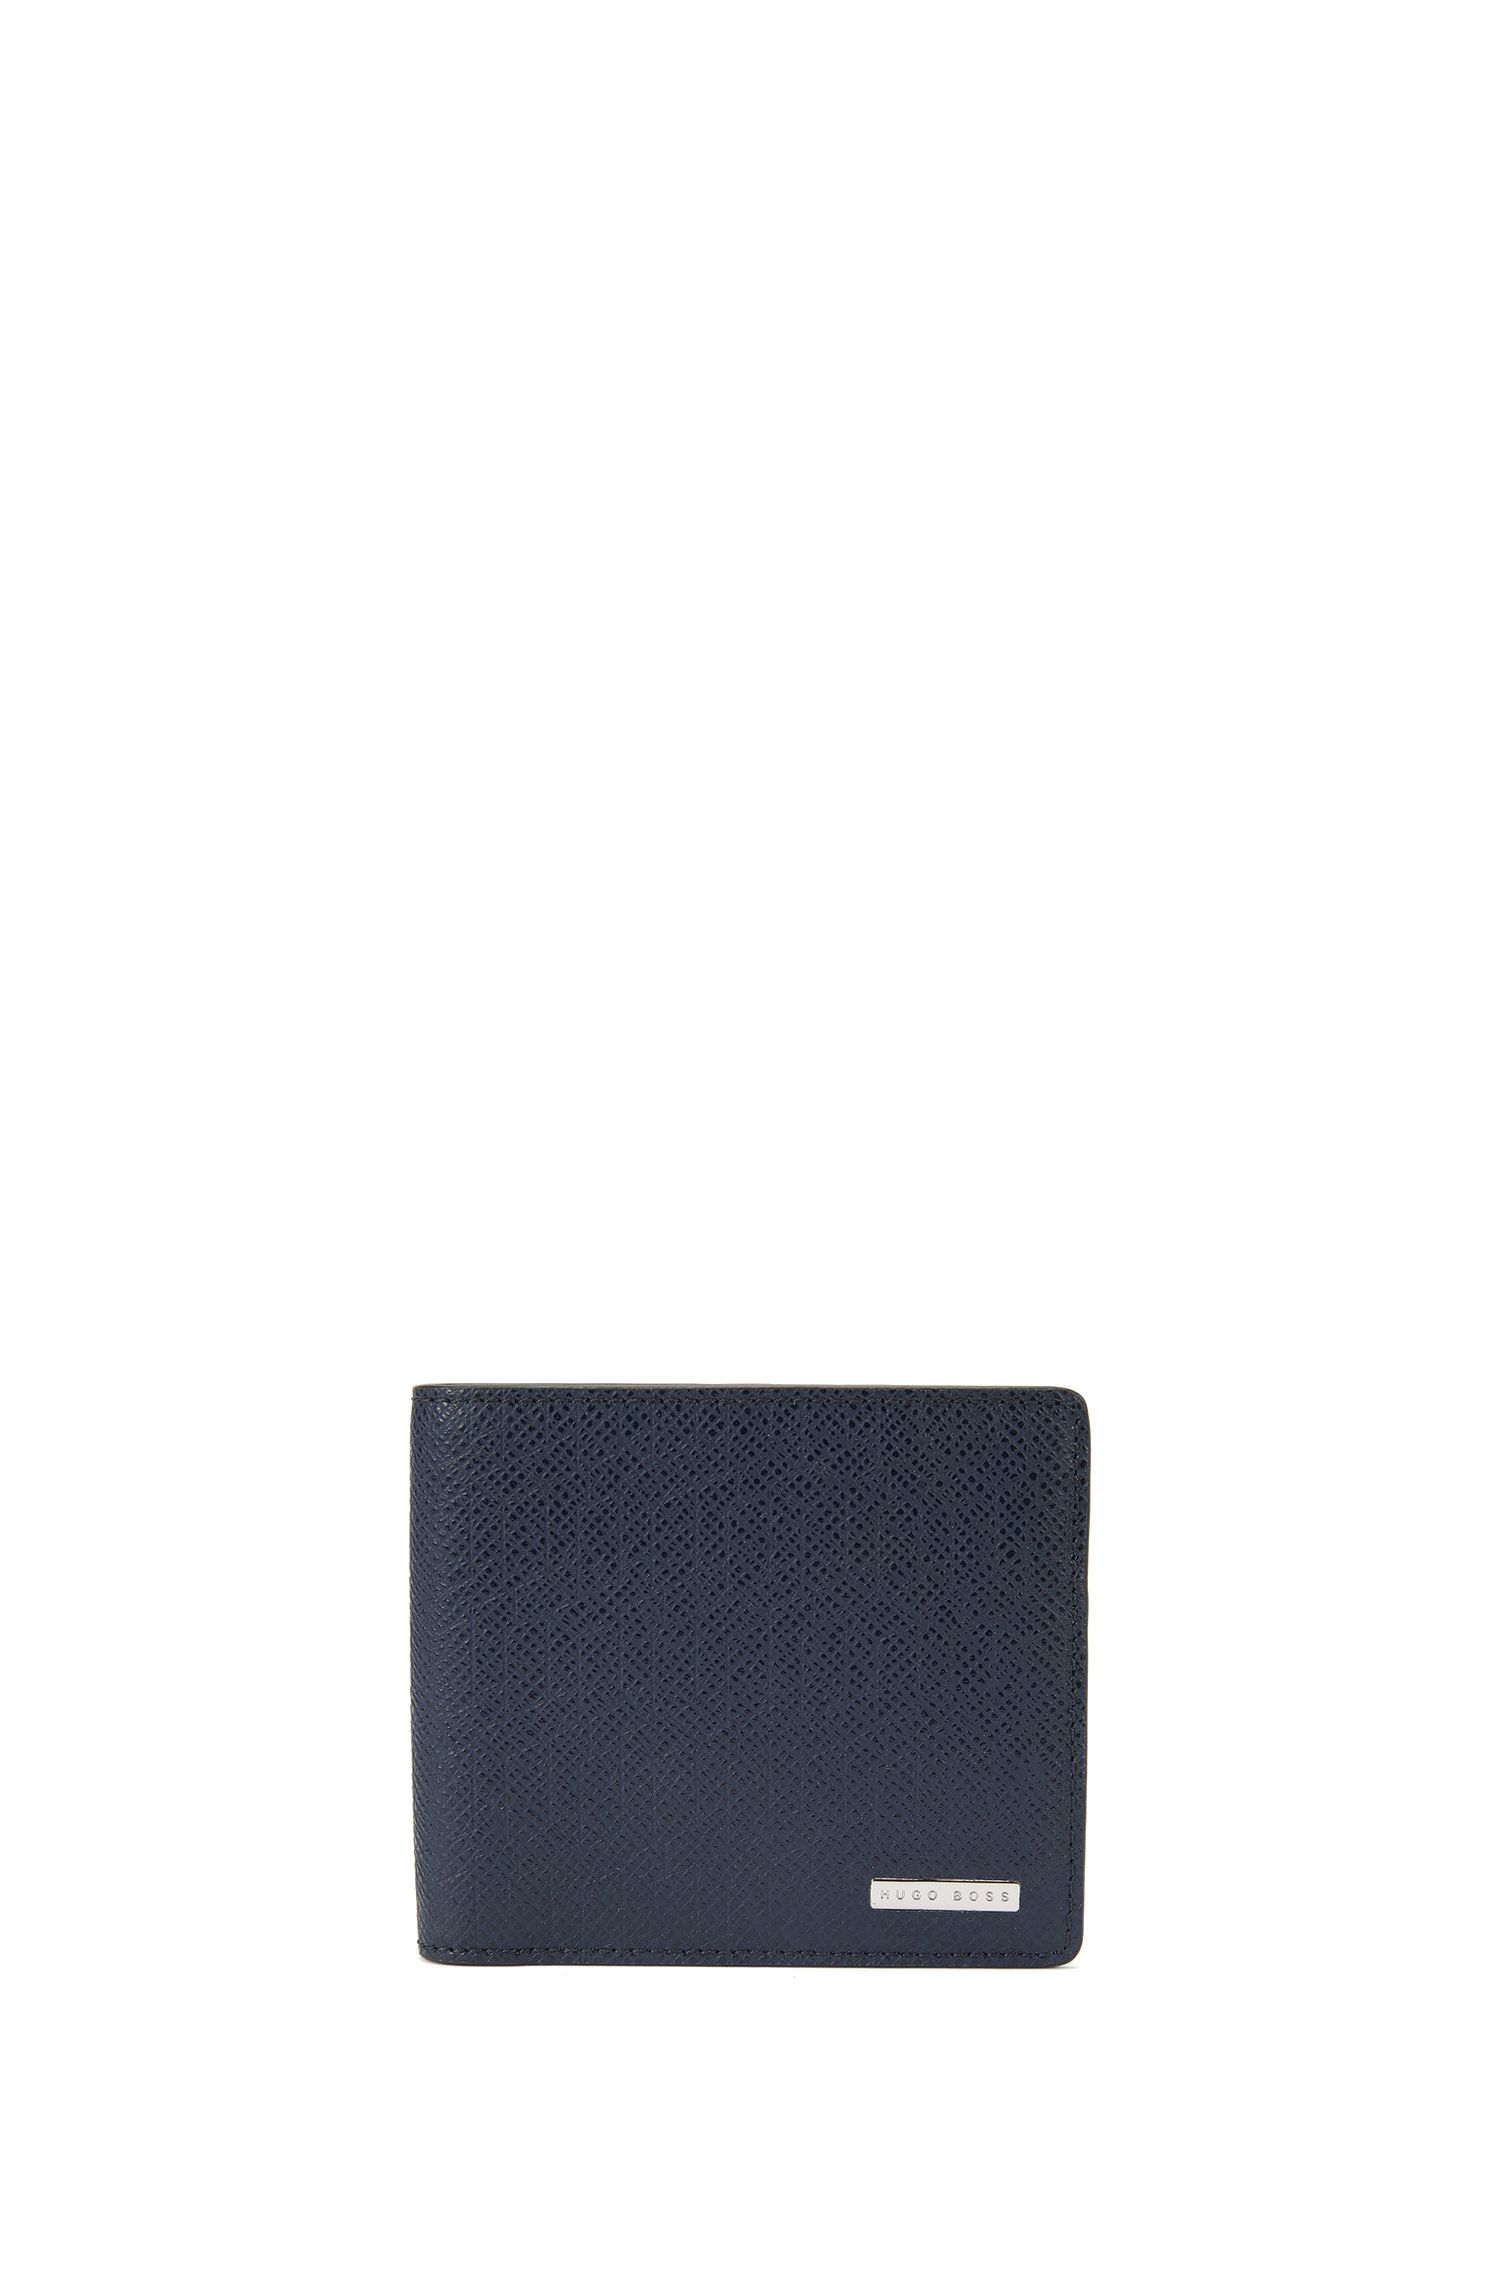 Signature Holiday Edition leather folding wallet with 8 card slots